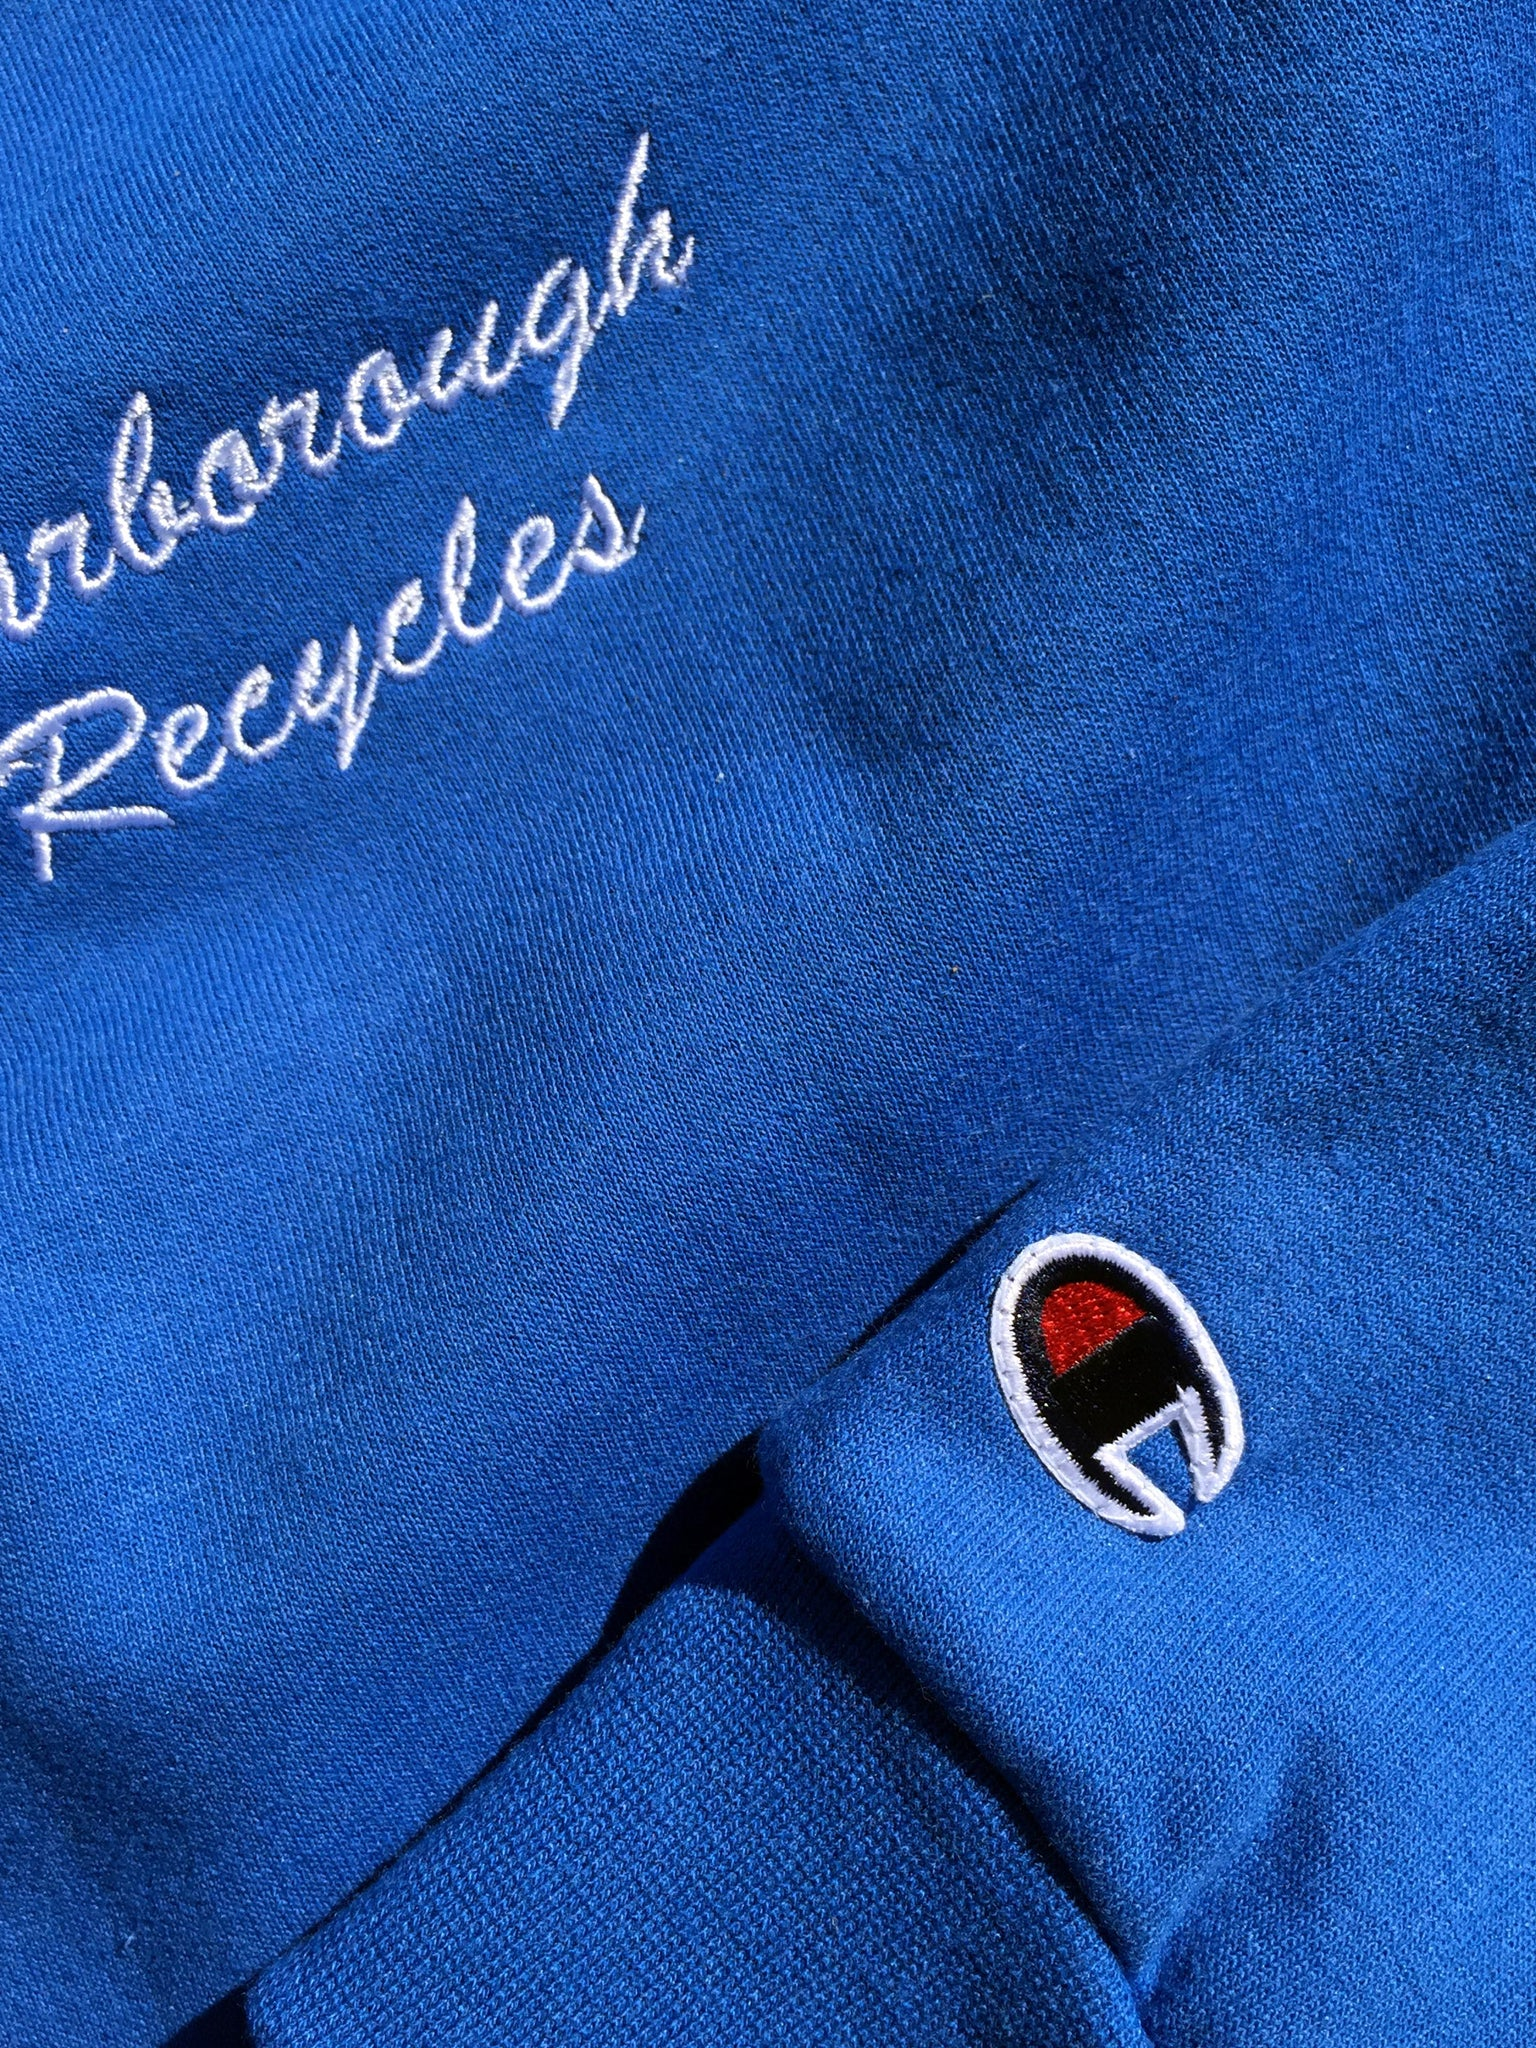 Scarborough Recycles x Champion Crewneck Sweater Blue White